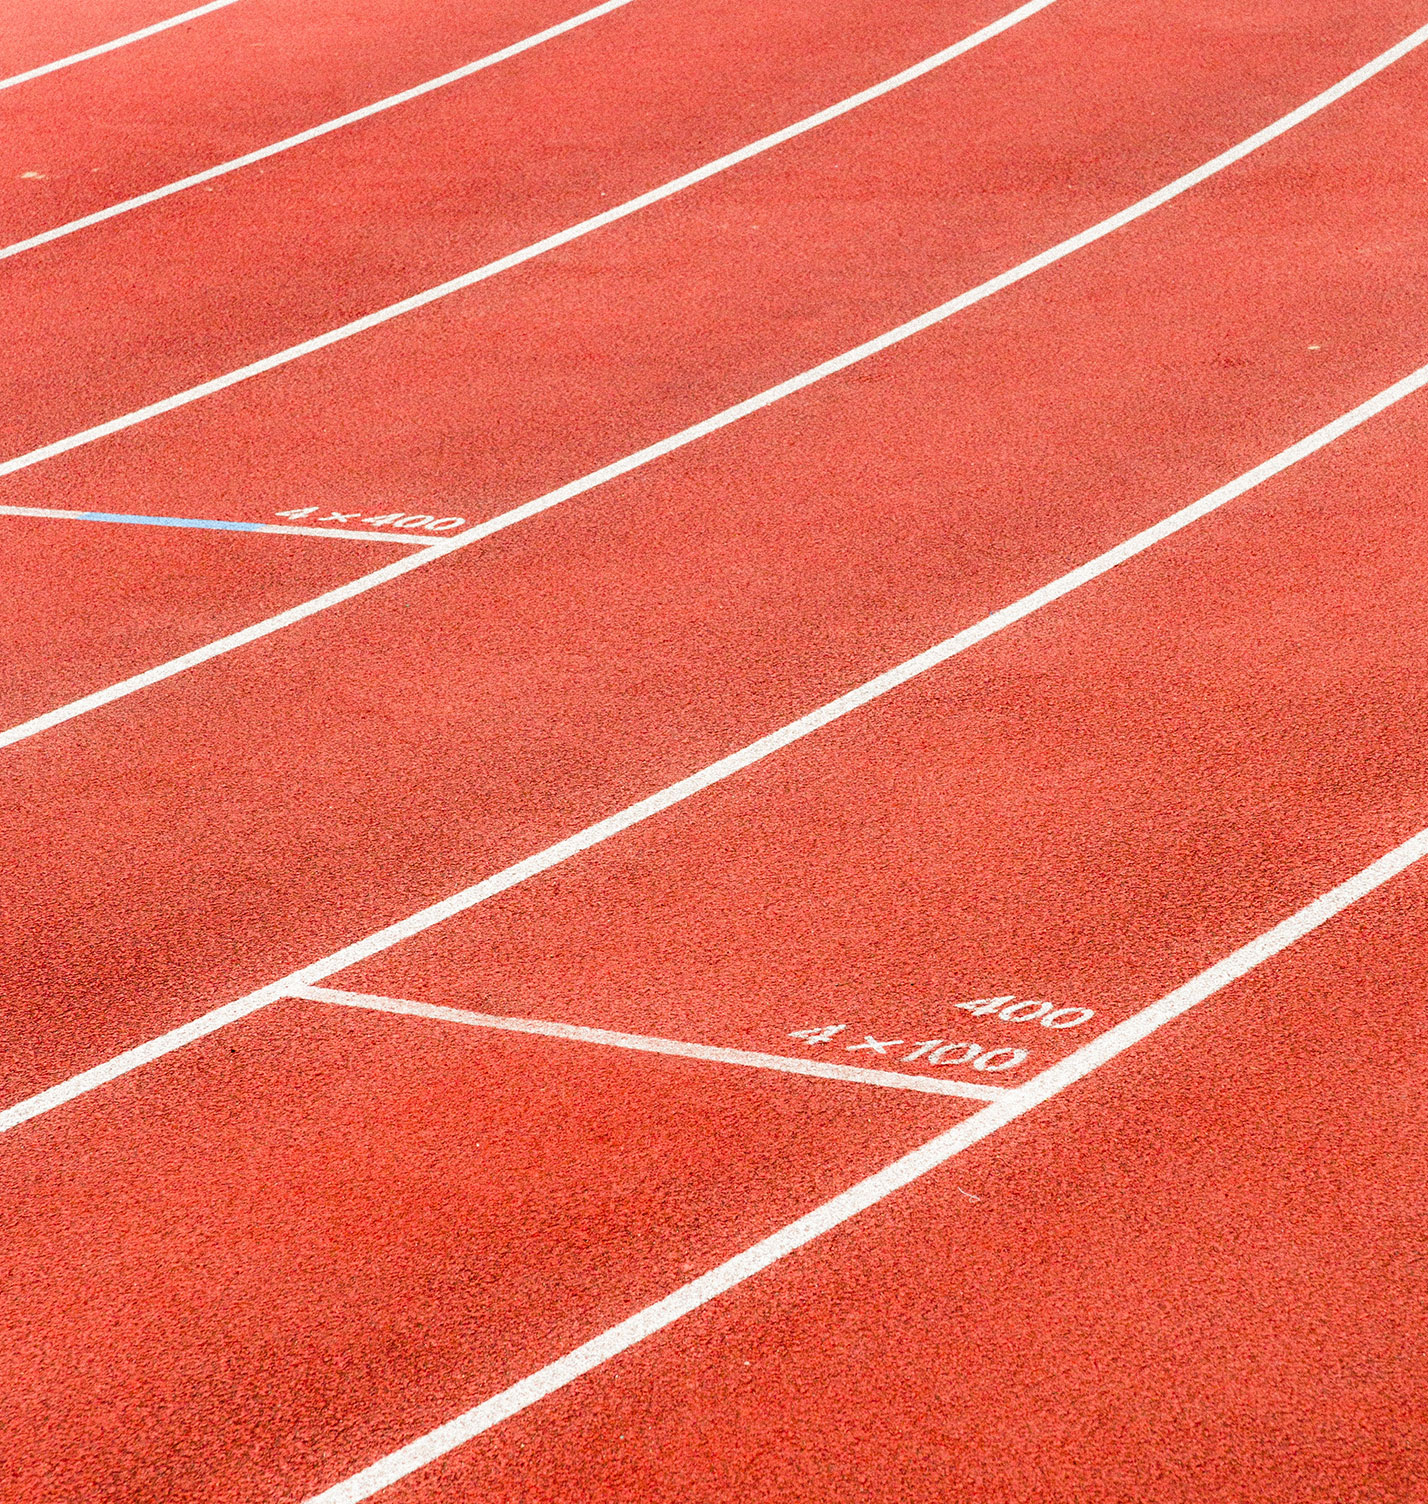 Starting lines from a running track.